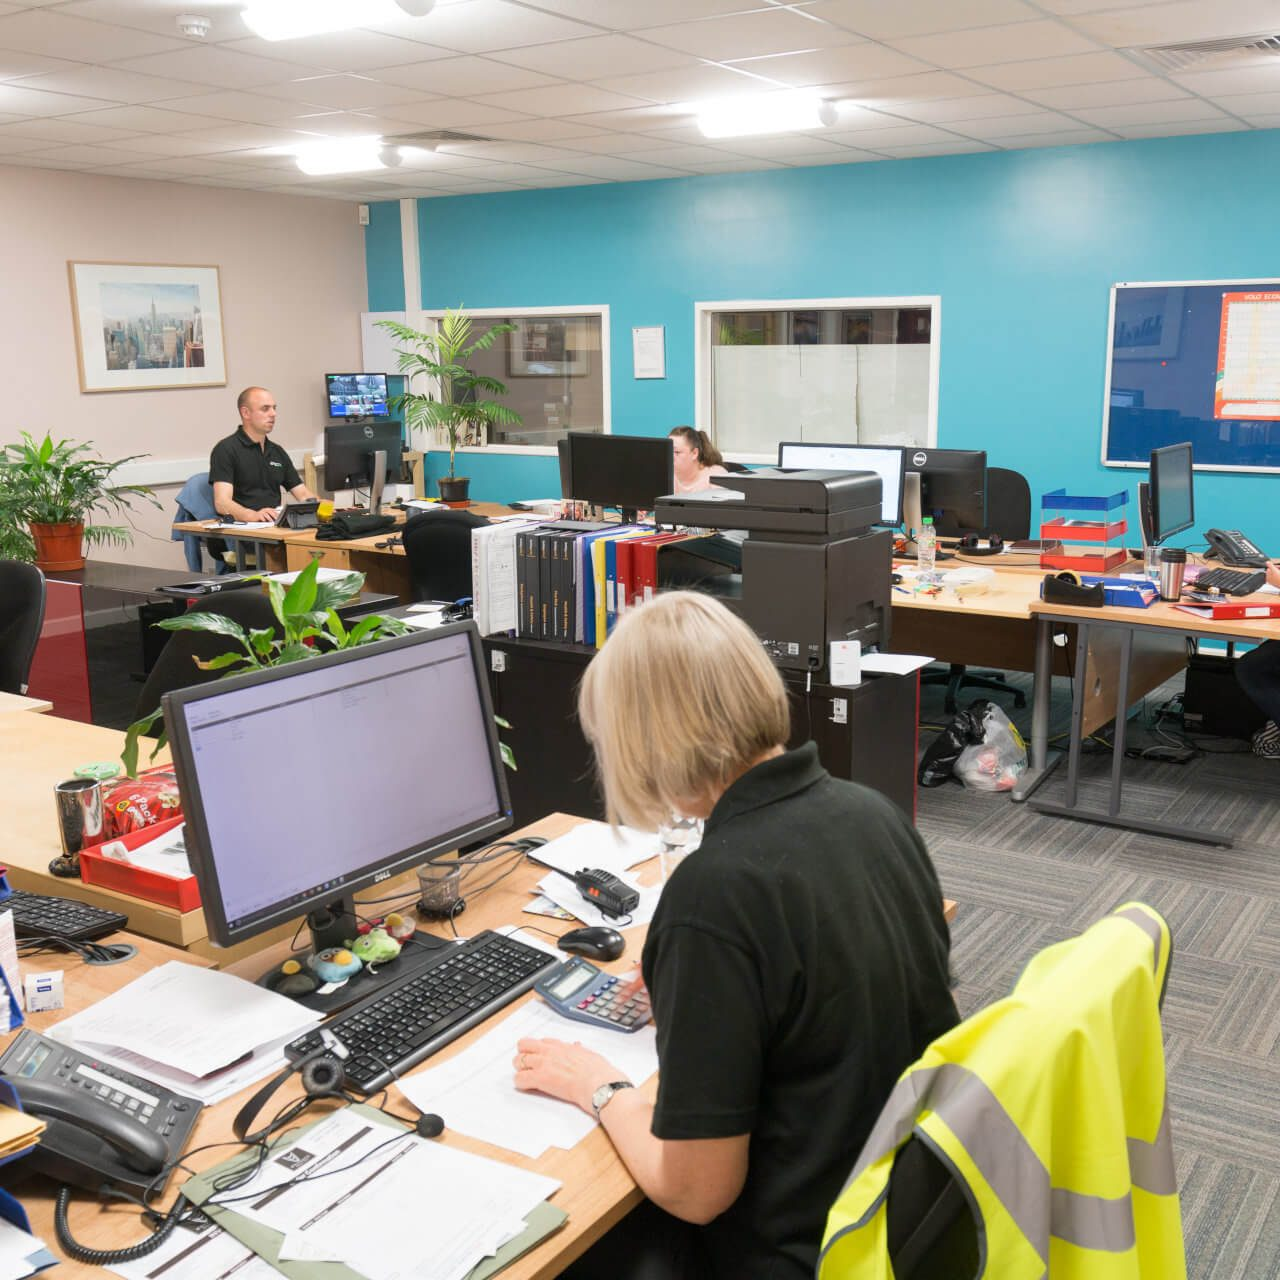 Direct4x4 office in Derby with staff members working at their desks